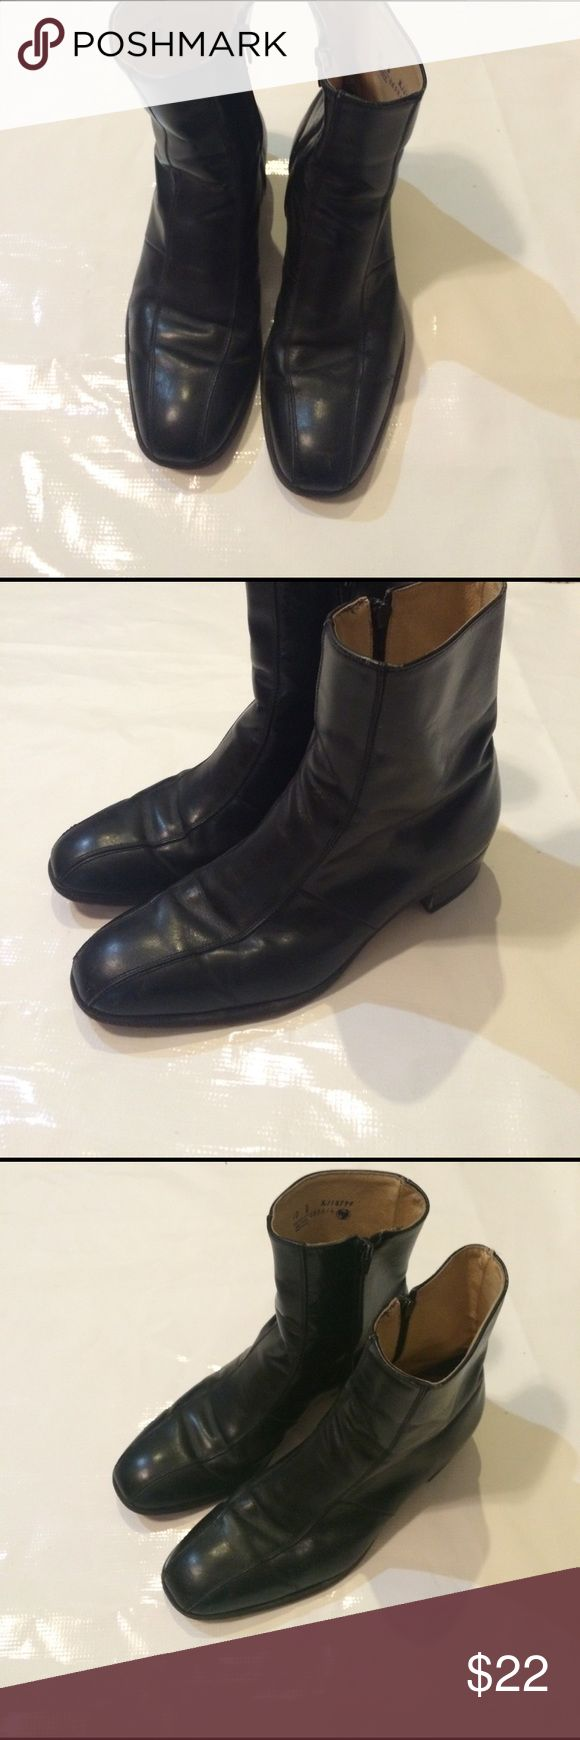 Men's ankle boots Leather men's ankle boots size 10 Shoes Boots